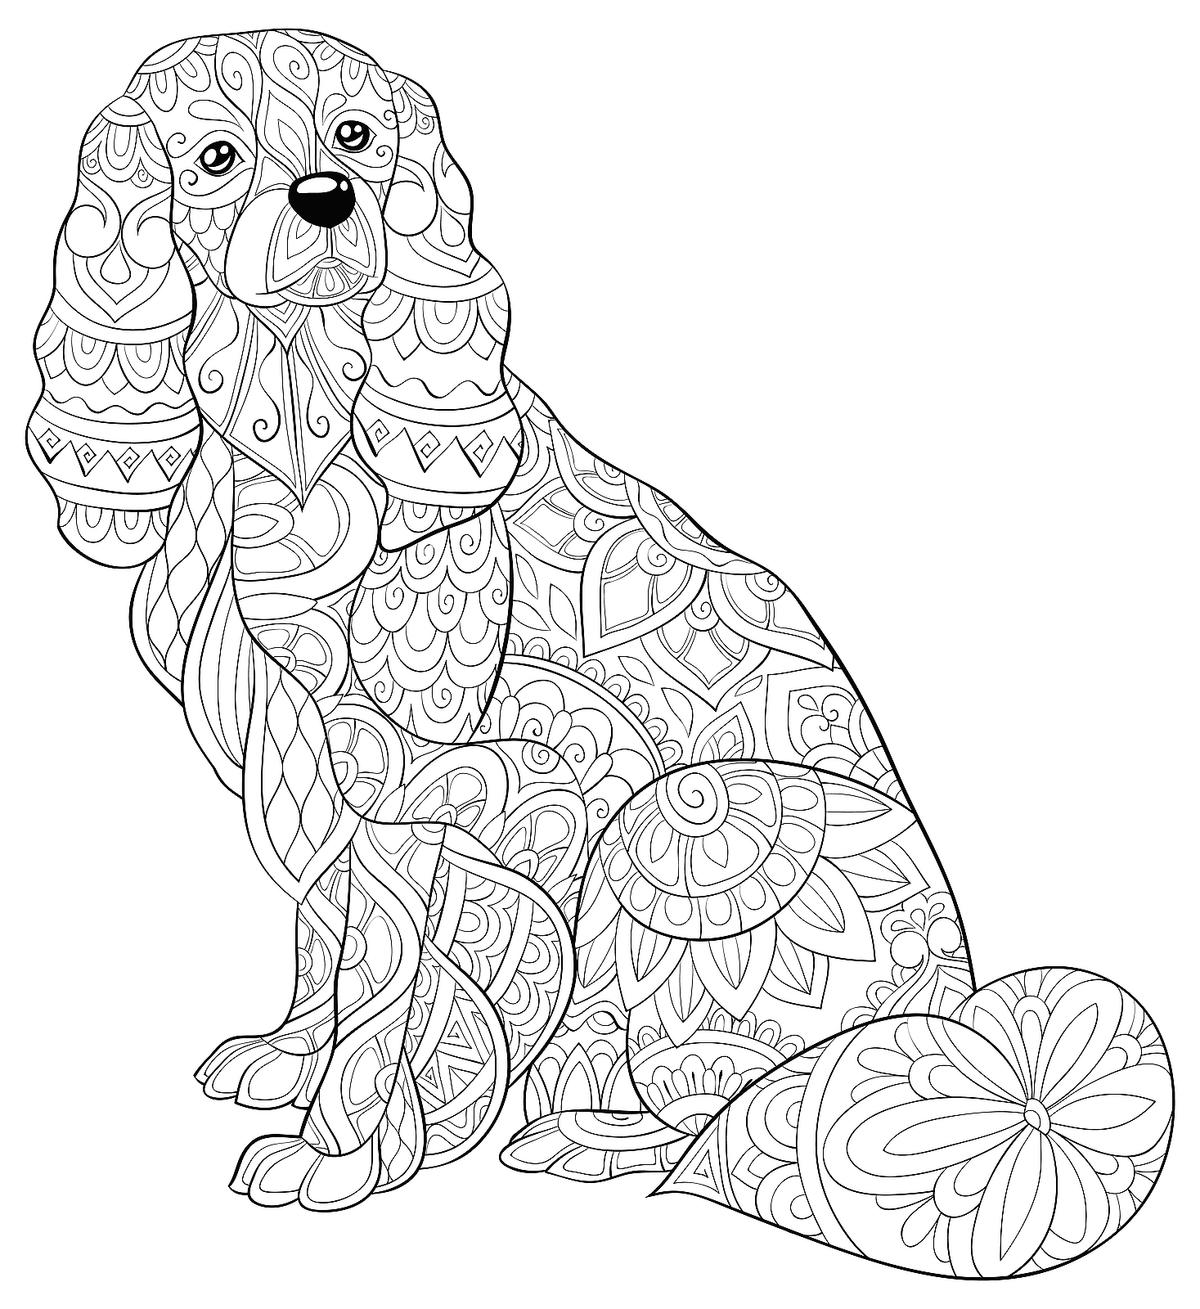 dog coloring in dog coloring pages printable coloring pages of dogs for dog in coloring